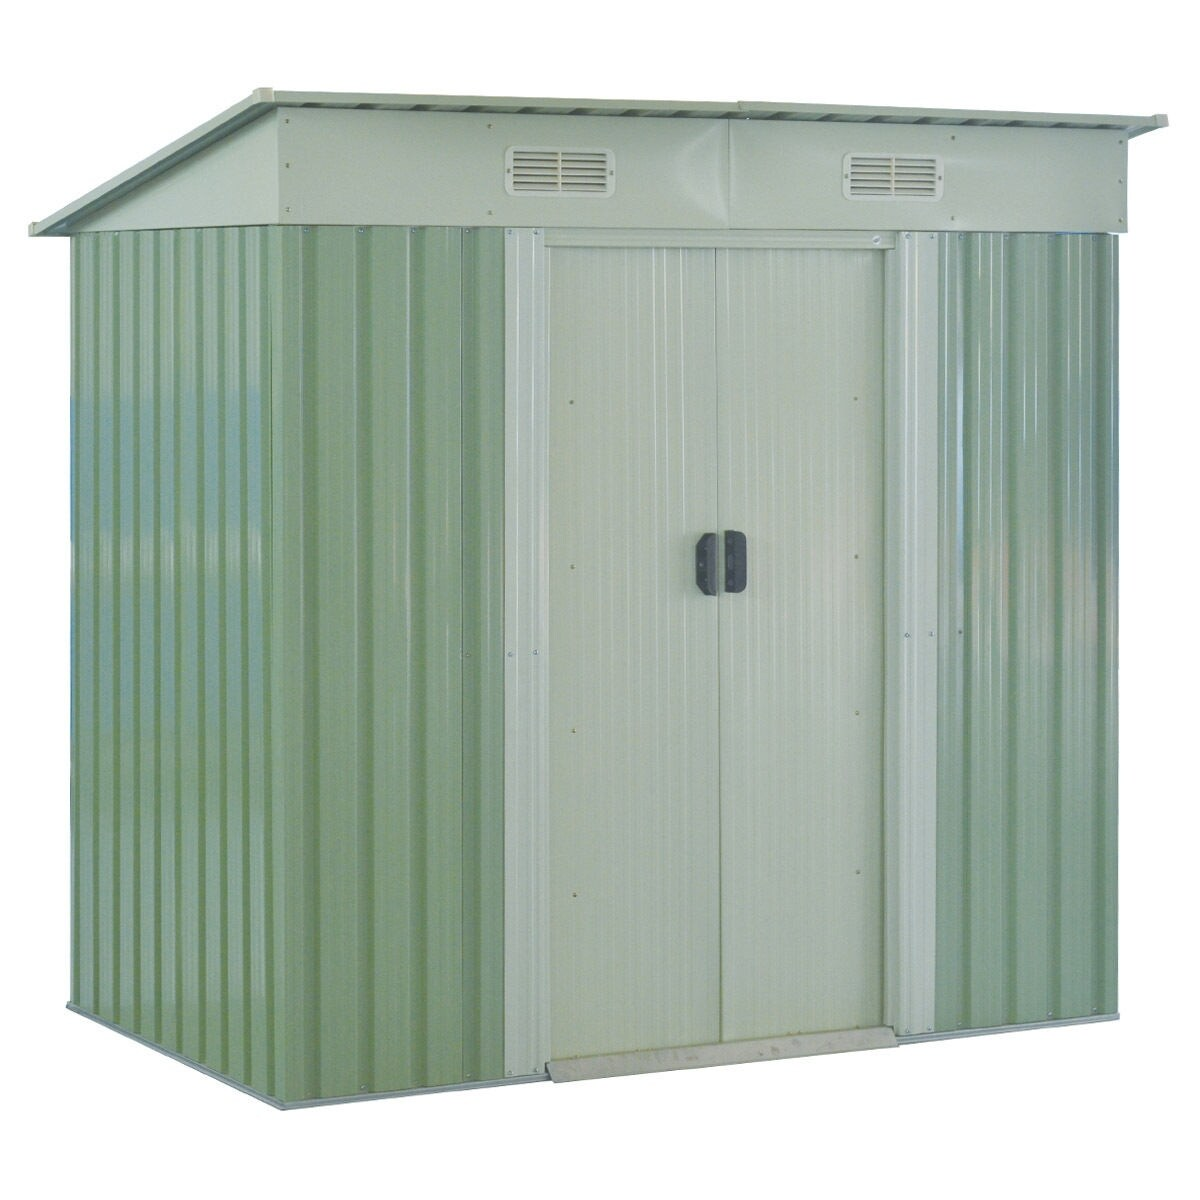 Shop Costway 4x6FT Outdoor Garden Storage Shed Tool House Sliding Door  Galvanized Steel Green   Free Shipping Today   Overstock.com   16419865